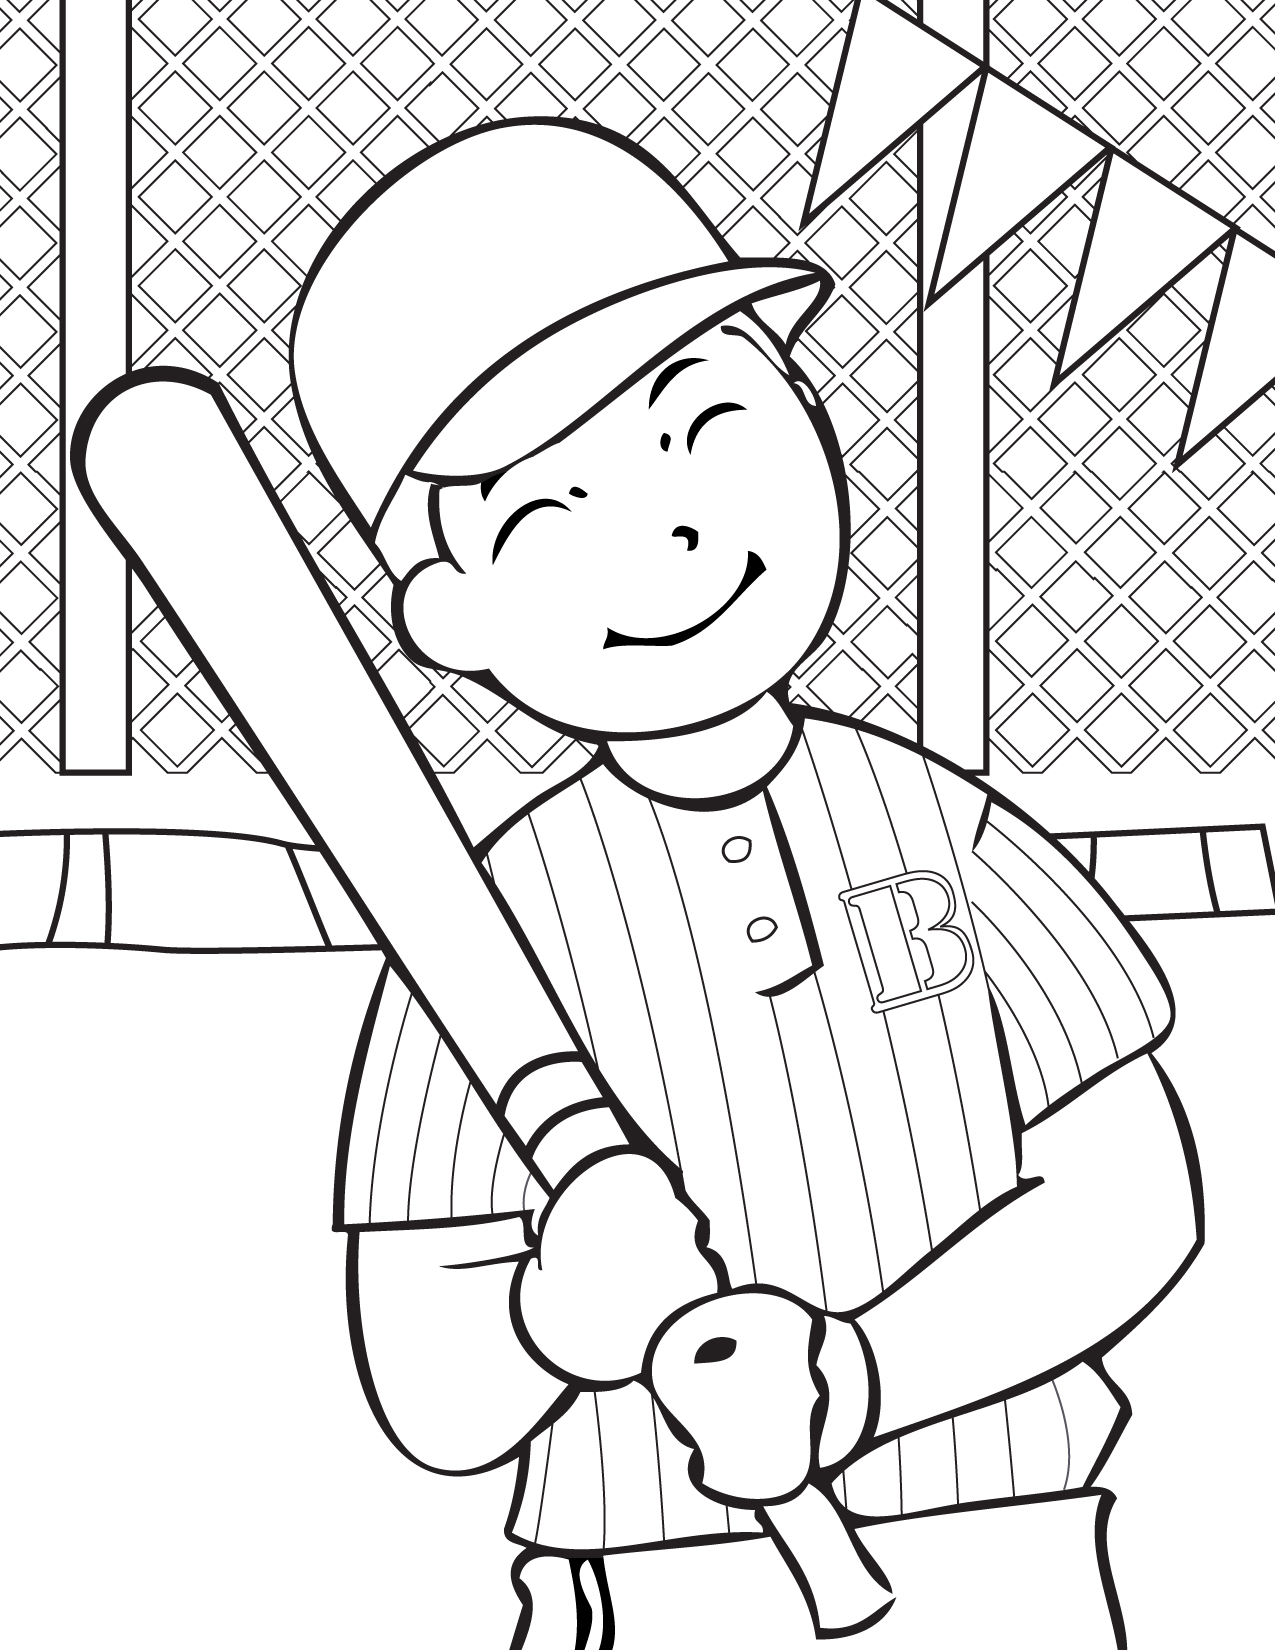 fun coloring pages for kids free printable baseball coloring pages for kids best